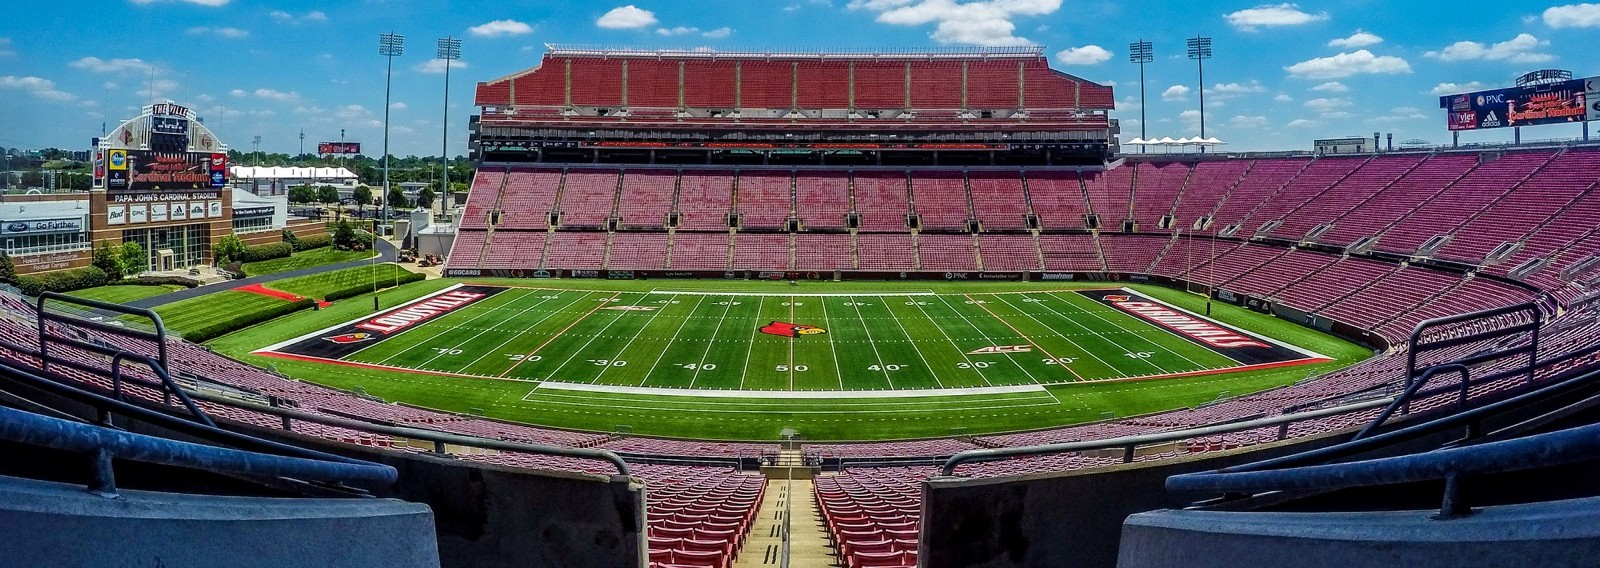 Papa John's Cardinal Stadium Fitted Photo by Seth Bloom